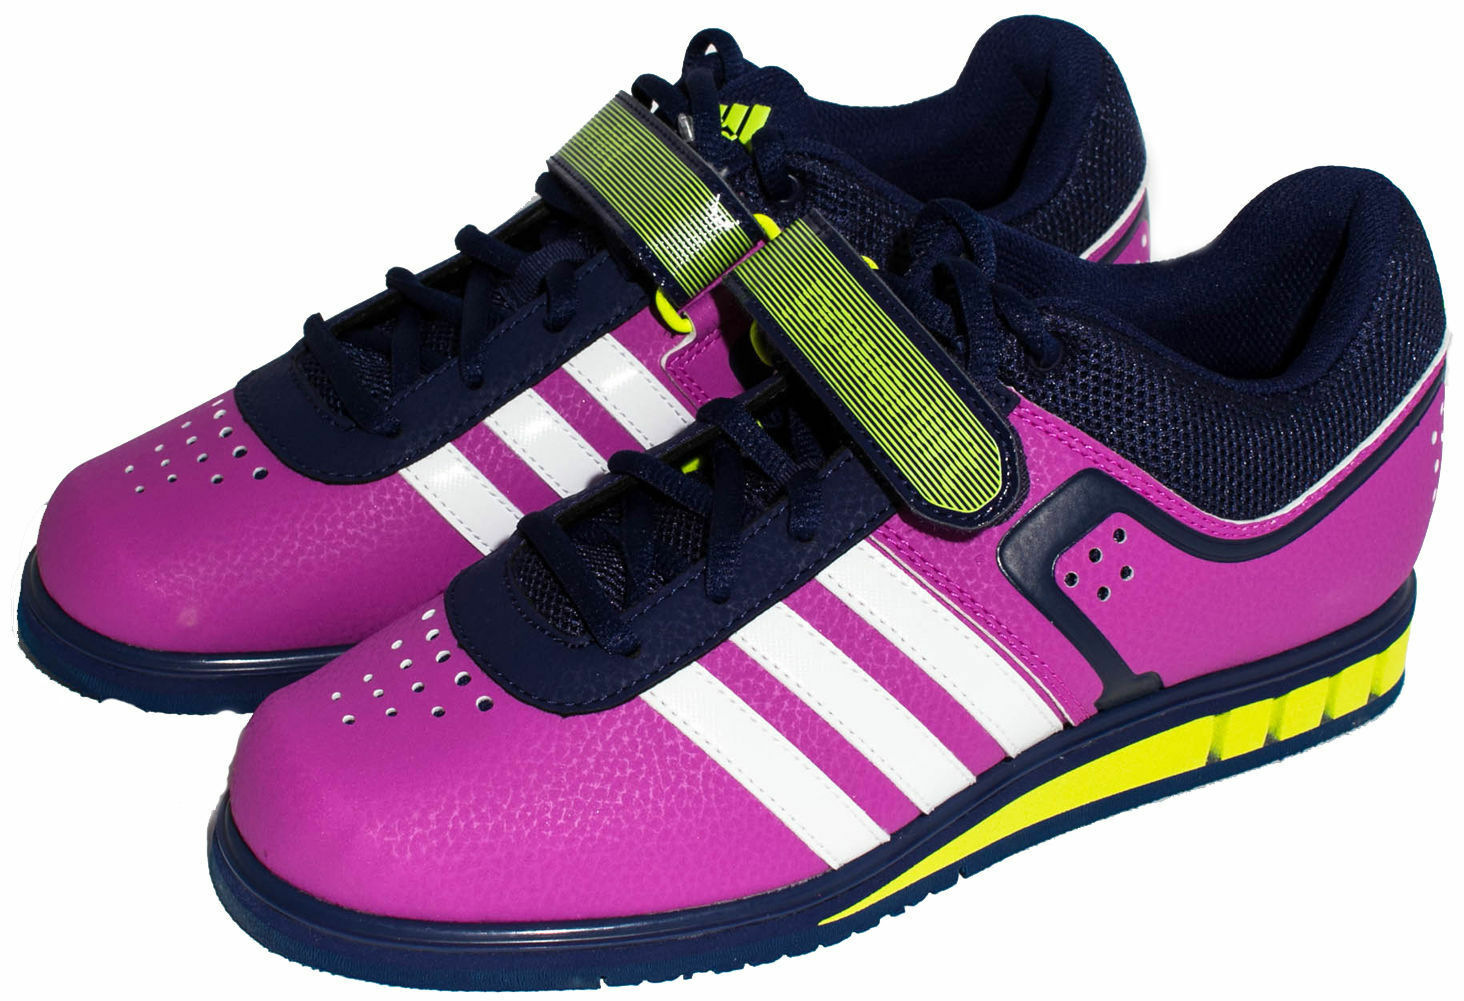 Adidas Women's Powerlift 2 Trainer Weightlifting shoes (Size 13M) NIB MSRP